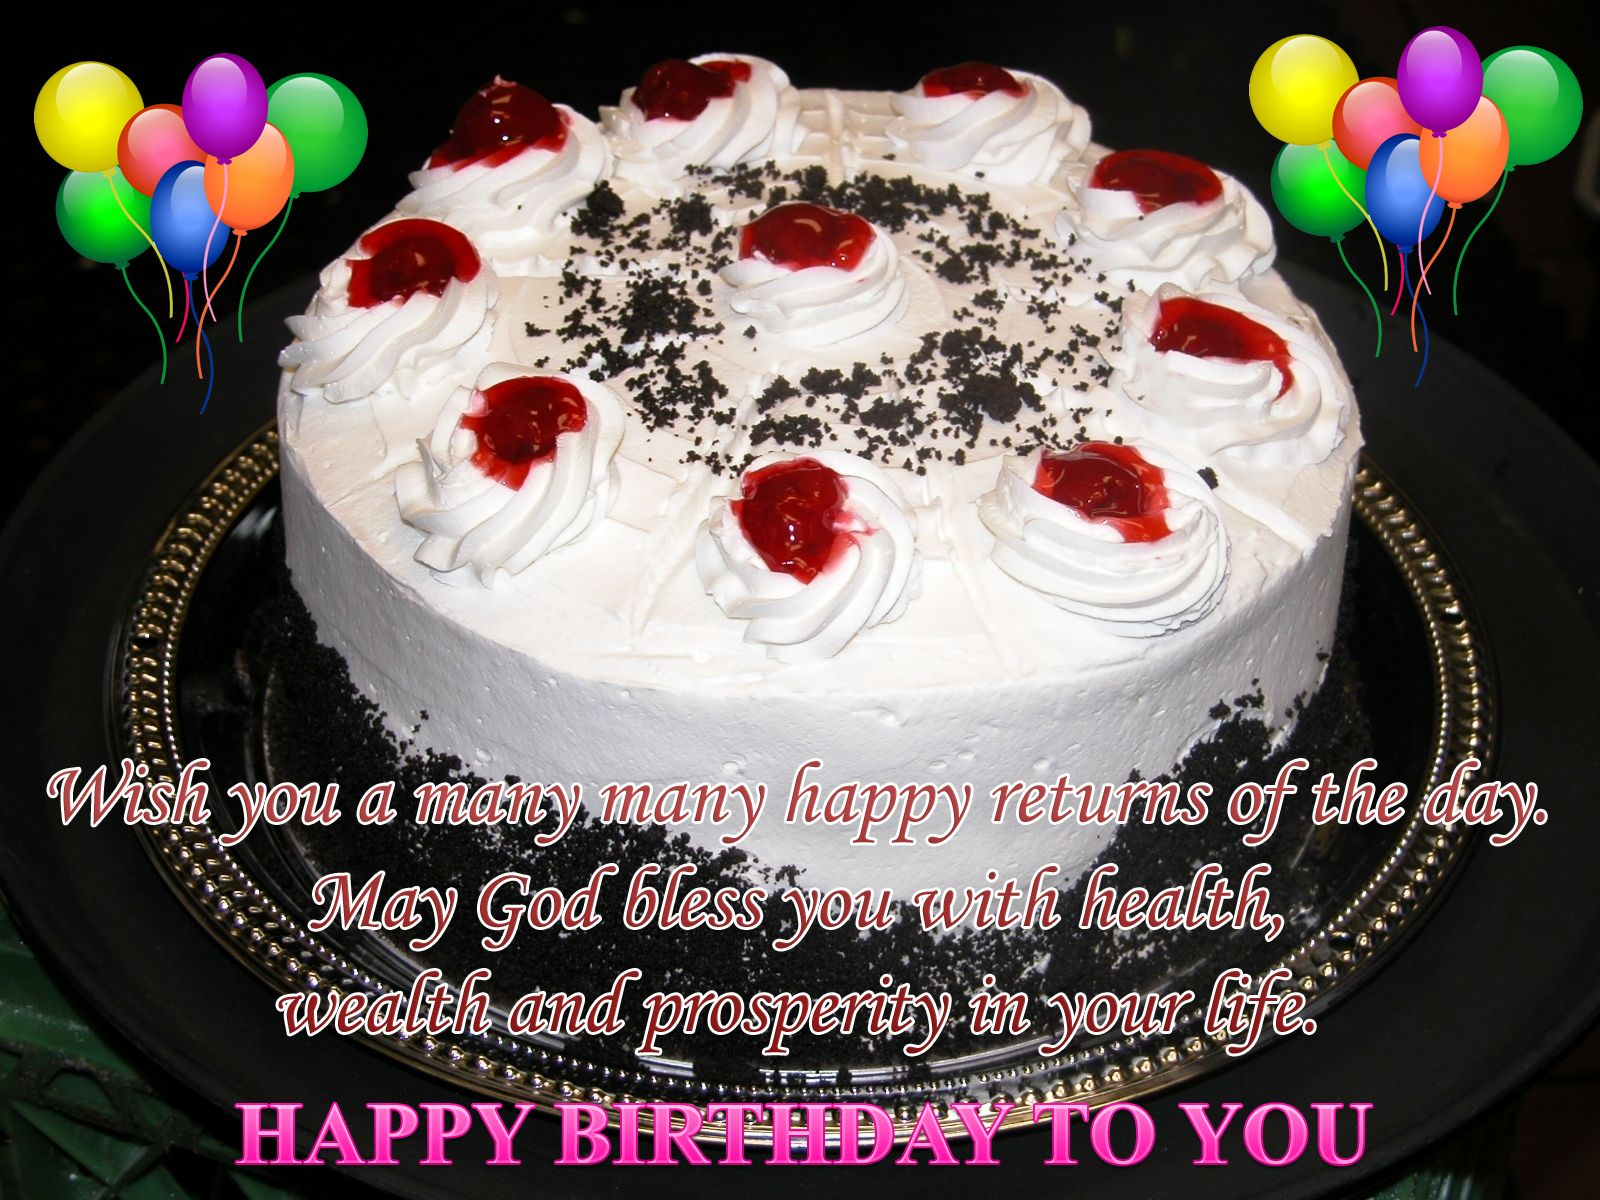 happy birthday wishes cake ; 84d5d13cfa003ceacd8a3580503cef5d